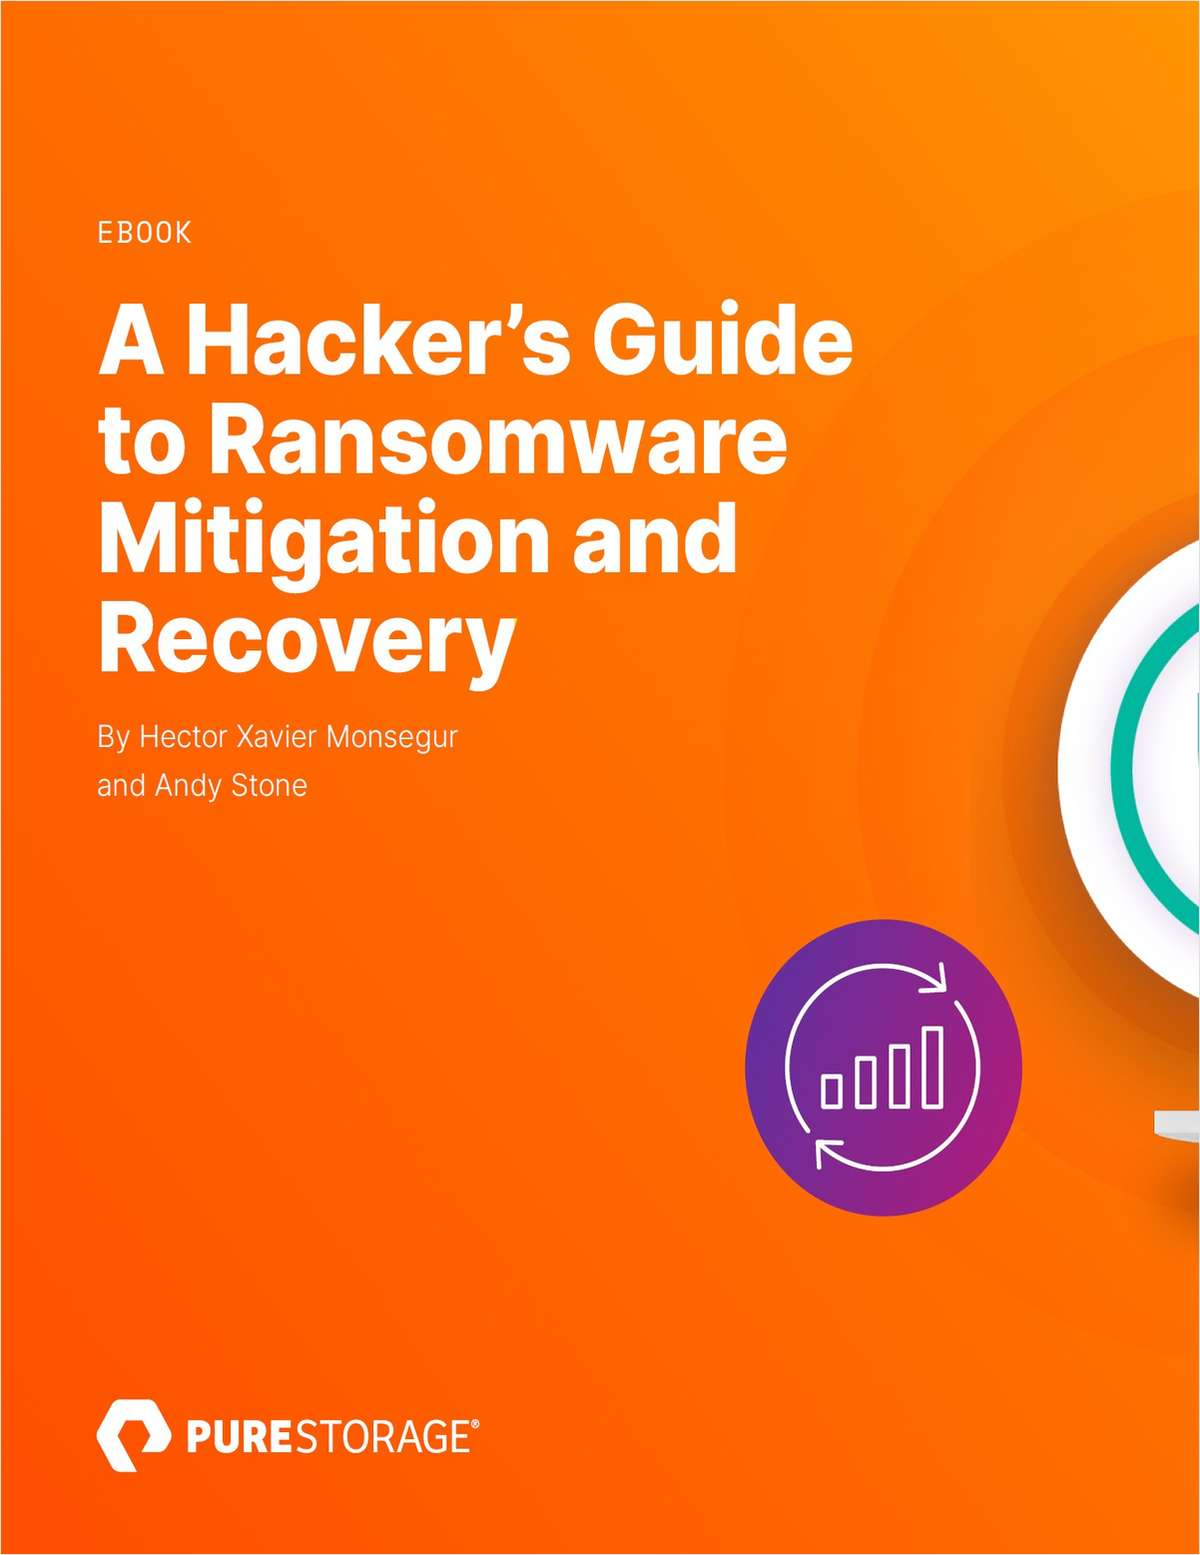 Hacker's Guide to Ransomware Mitigation and Recovery